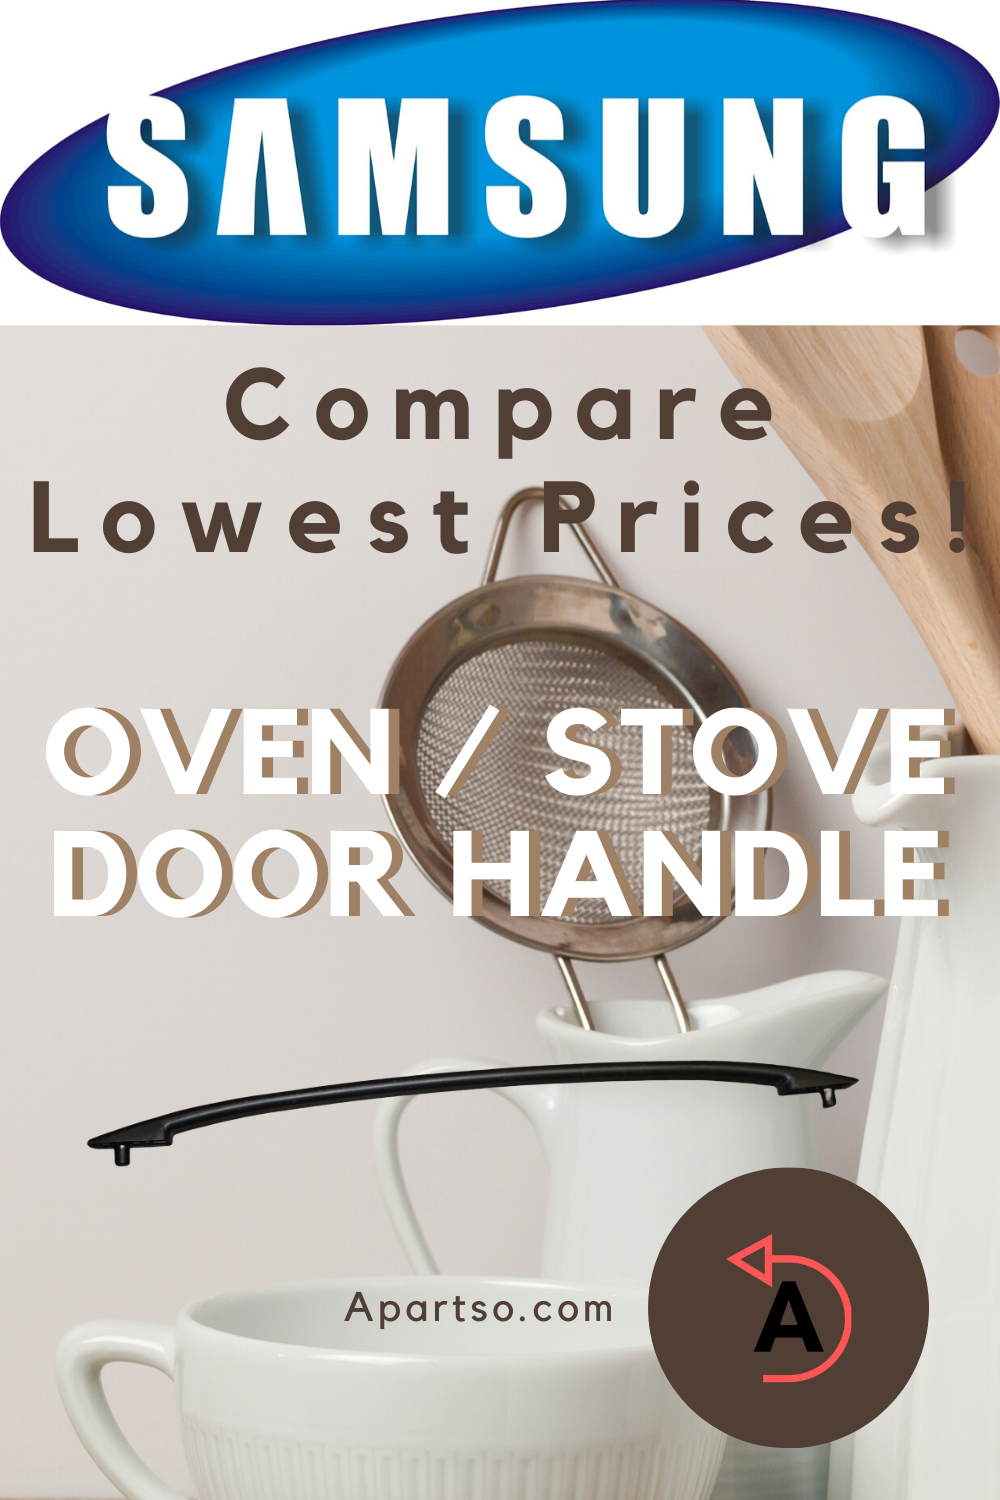 Compare Lowest Prices Samsung Oven Door Handle In 2020 Samsung Oven Door Handles Oven Range